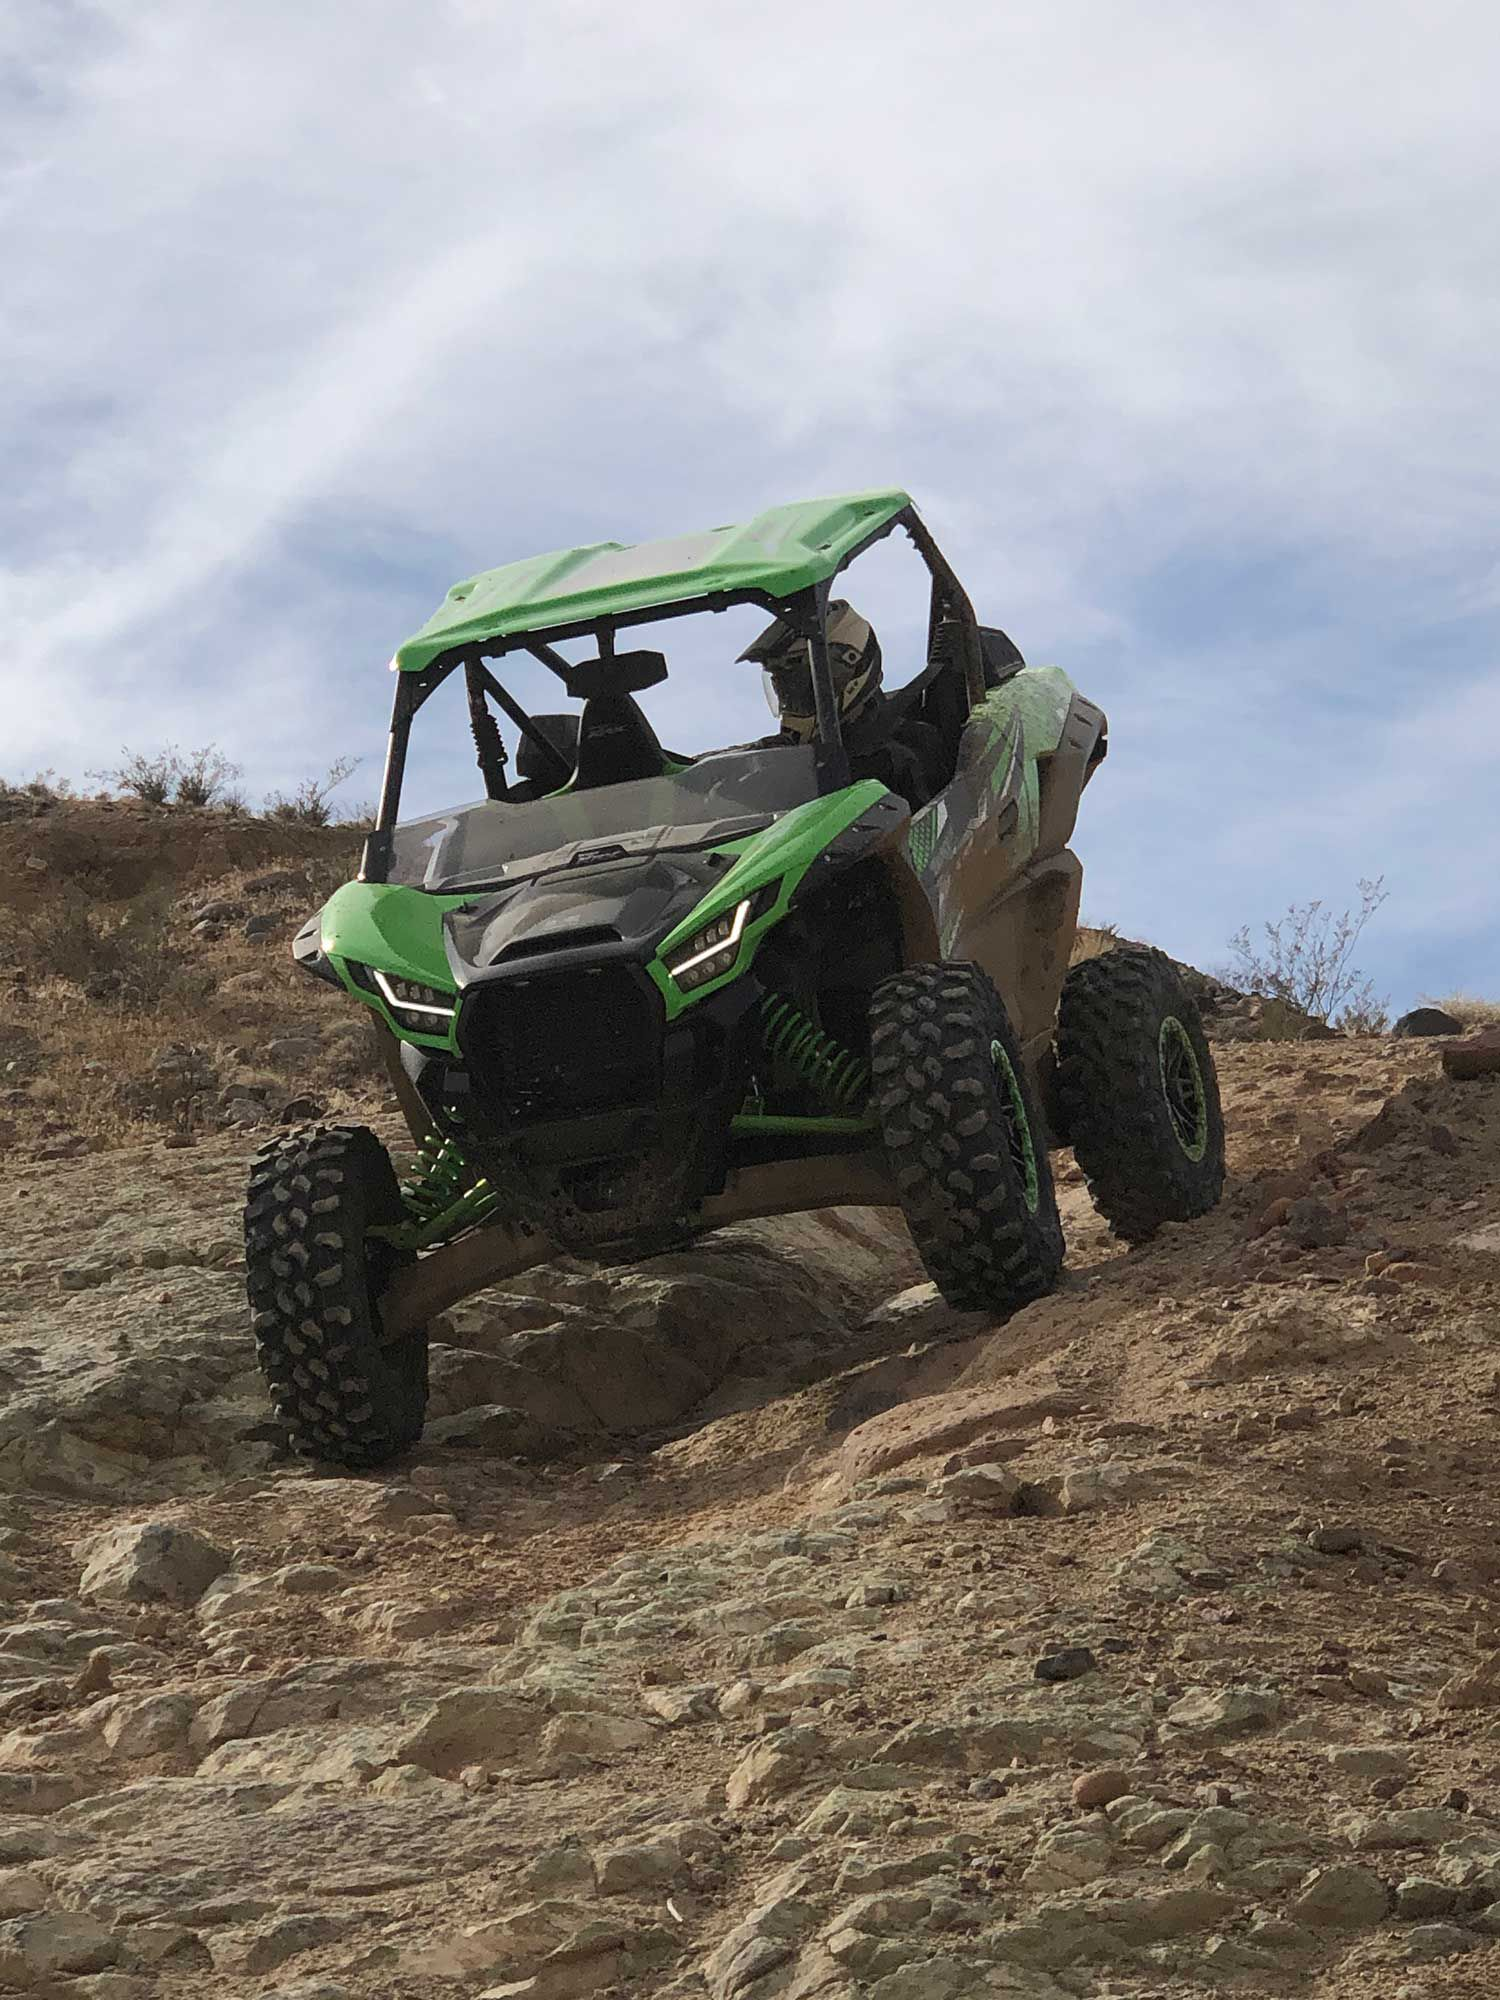 The Teryx was a nimble rock crawler, and managed the rocky sections with aplomb.